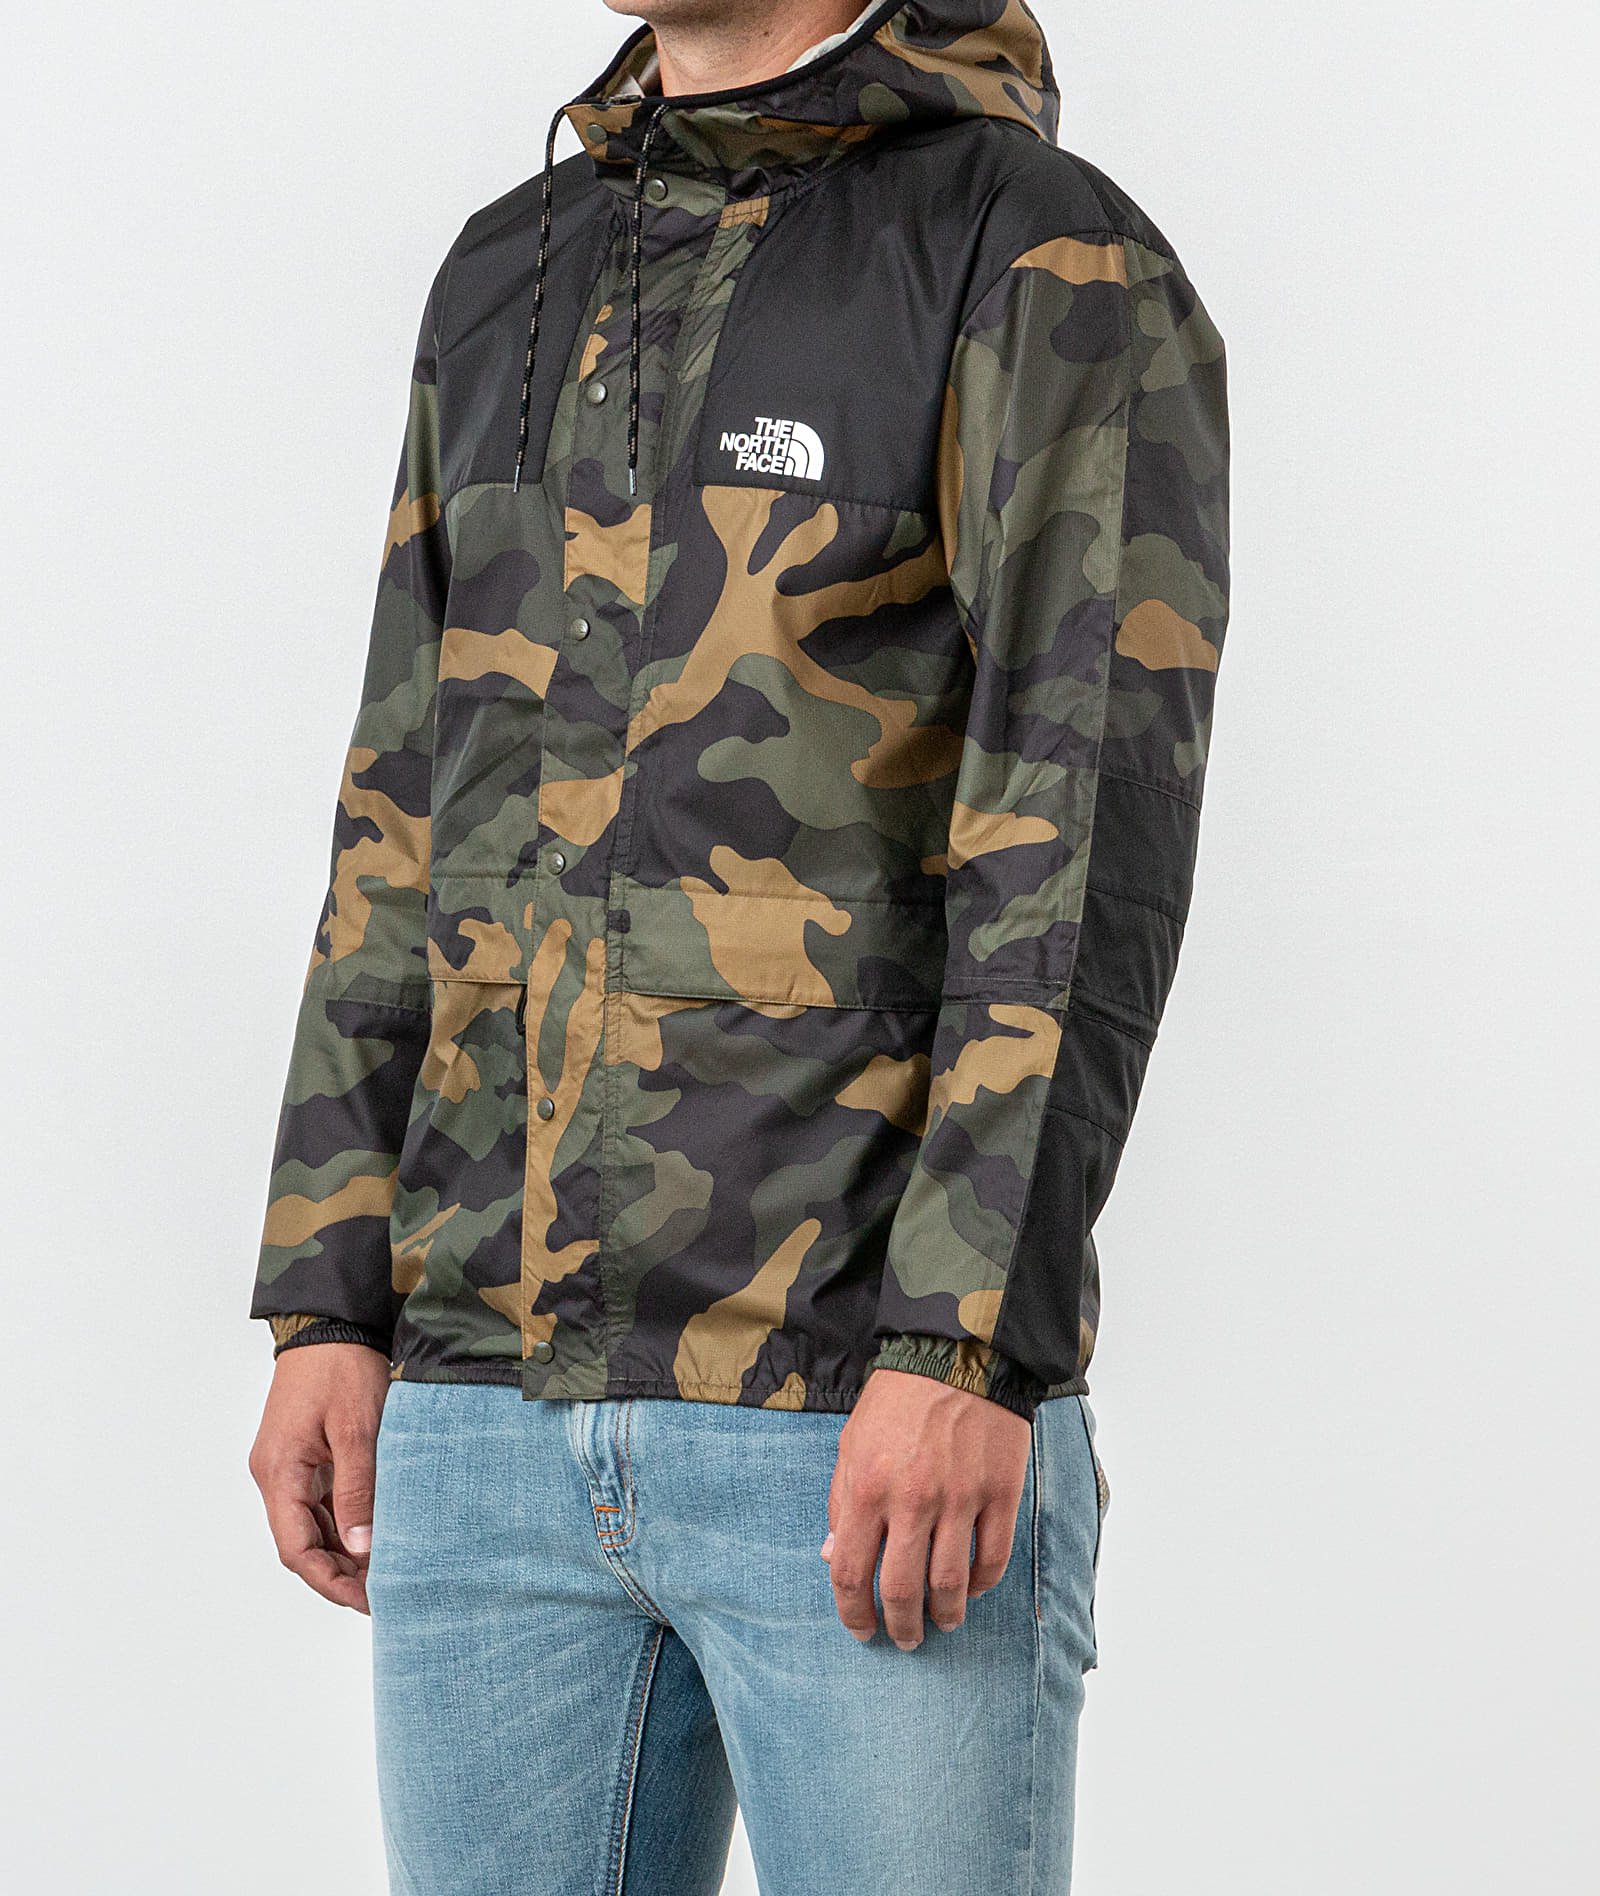 The North Face Jacket Camo S